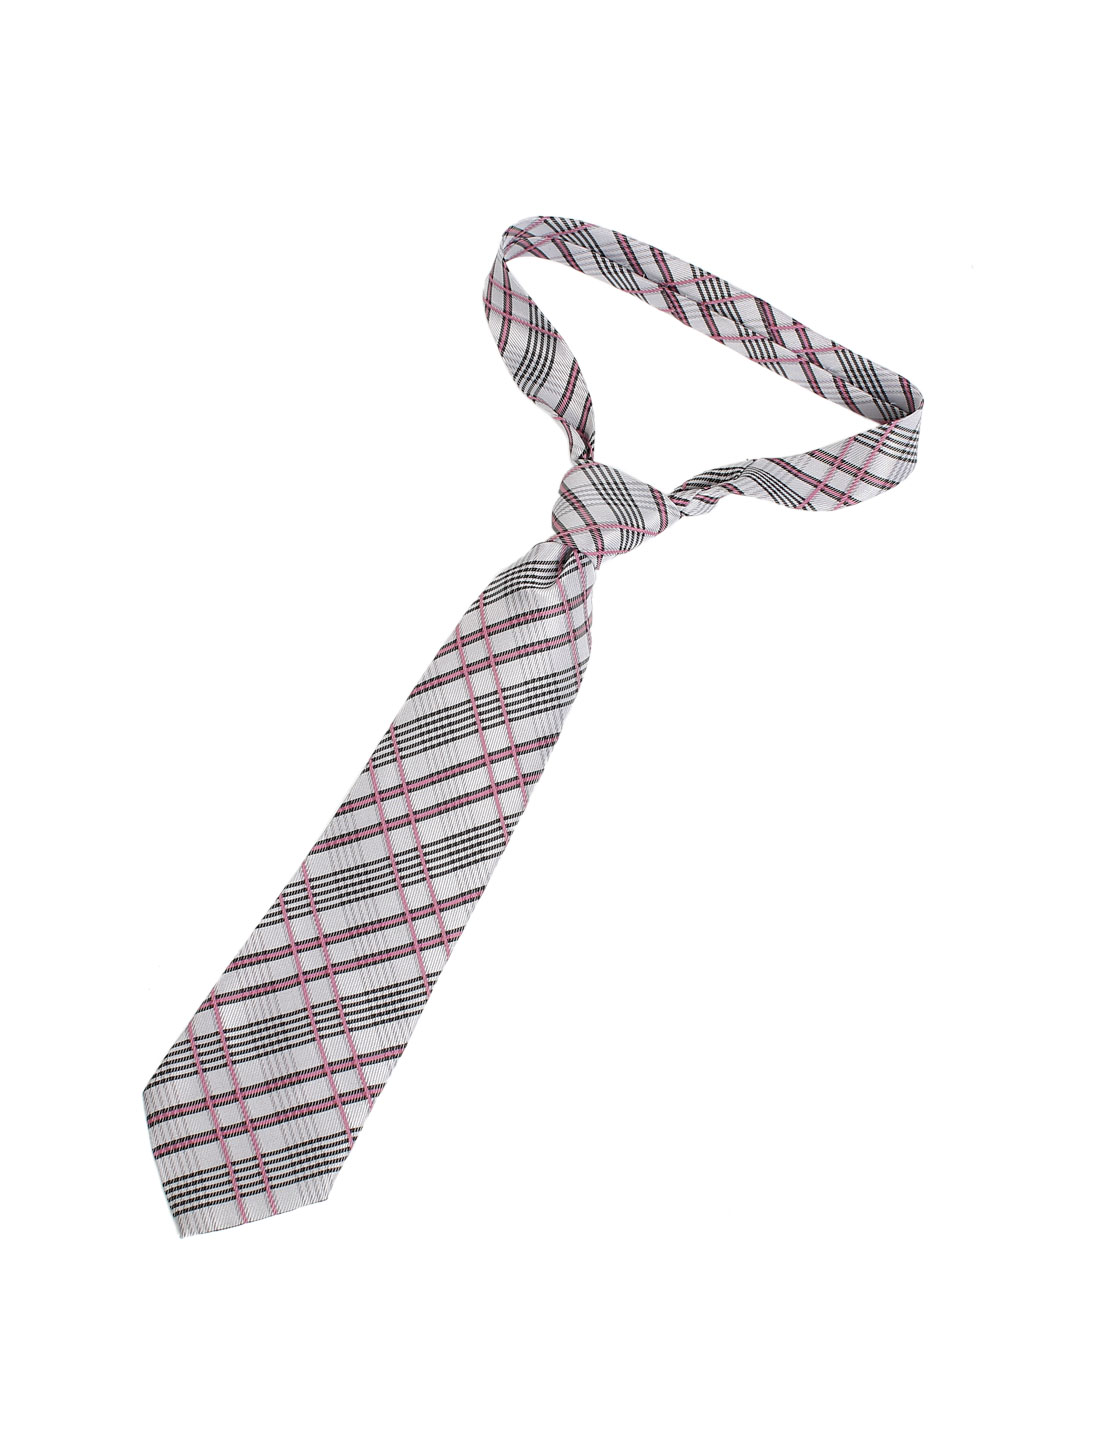 10cm Width Polyester Plaids Pattern Self Tie Neckwear Necktie Assorted Color